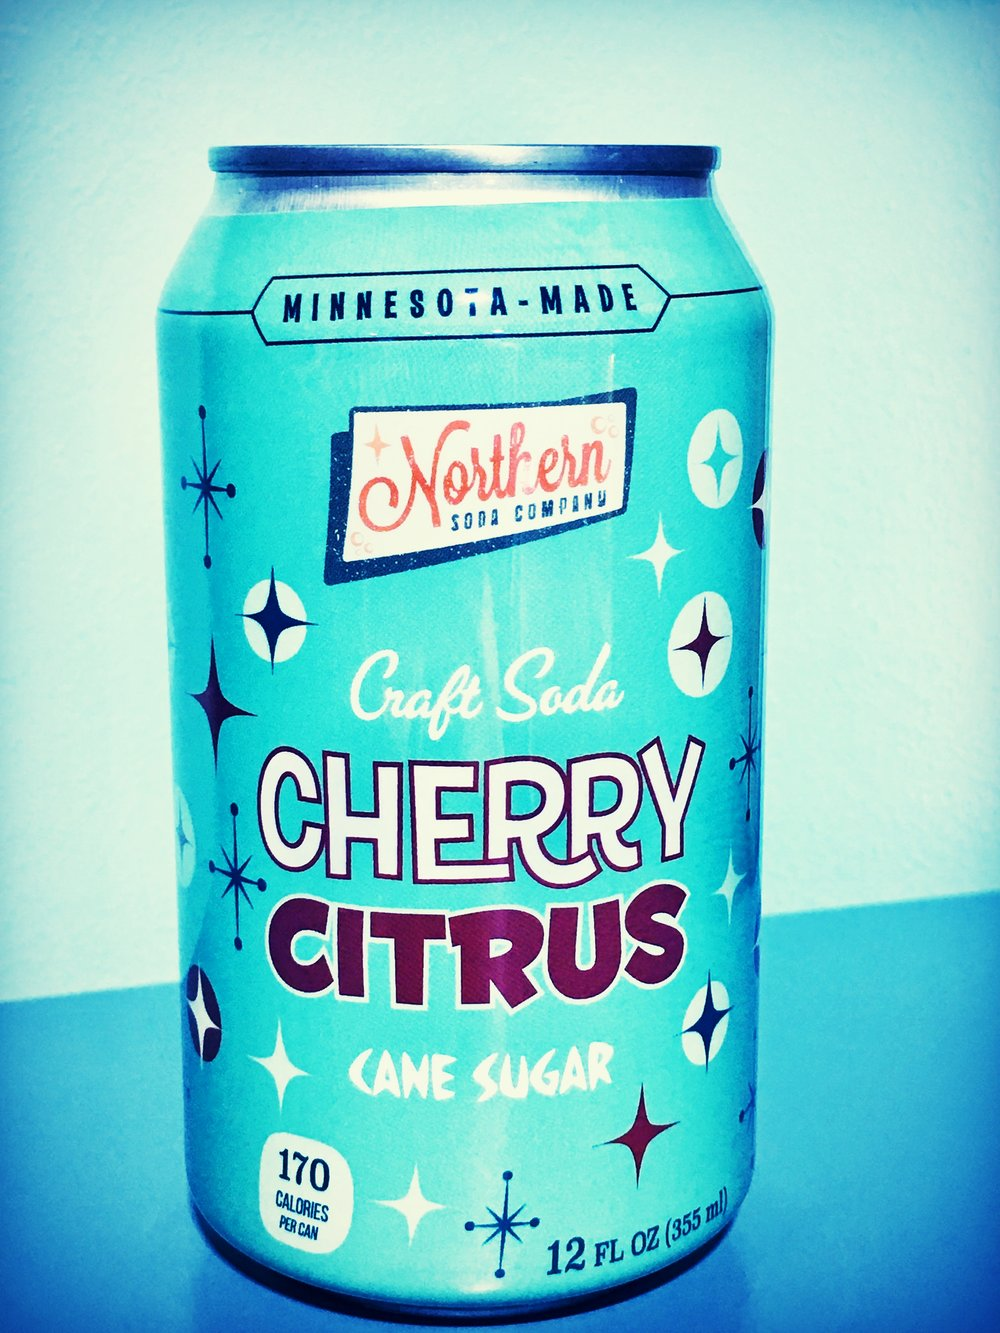 inspired by a 1950's sour recipe, this super citrusy soda packs a sour cherry punch!